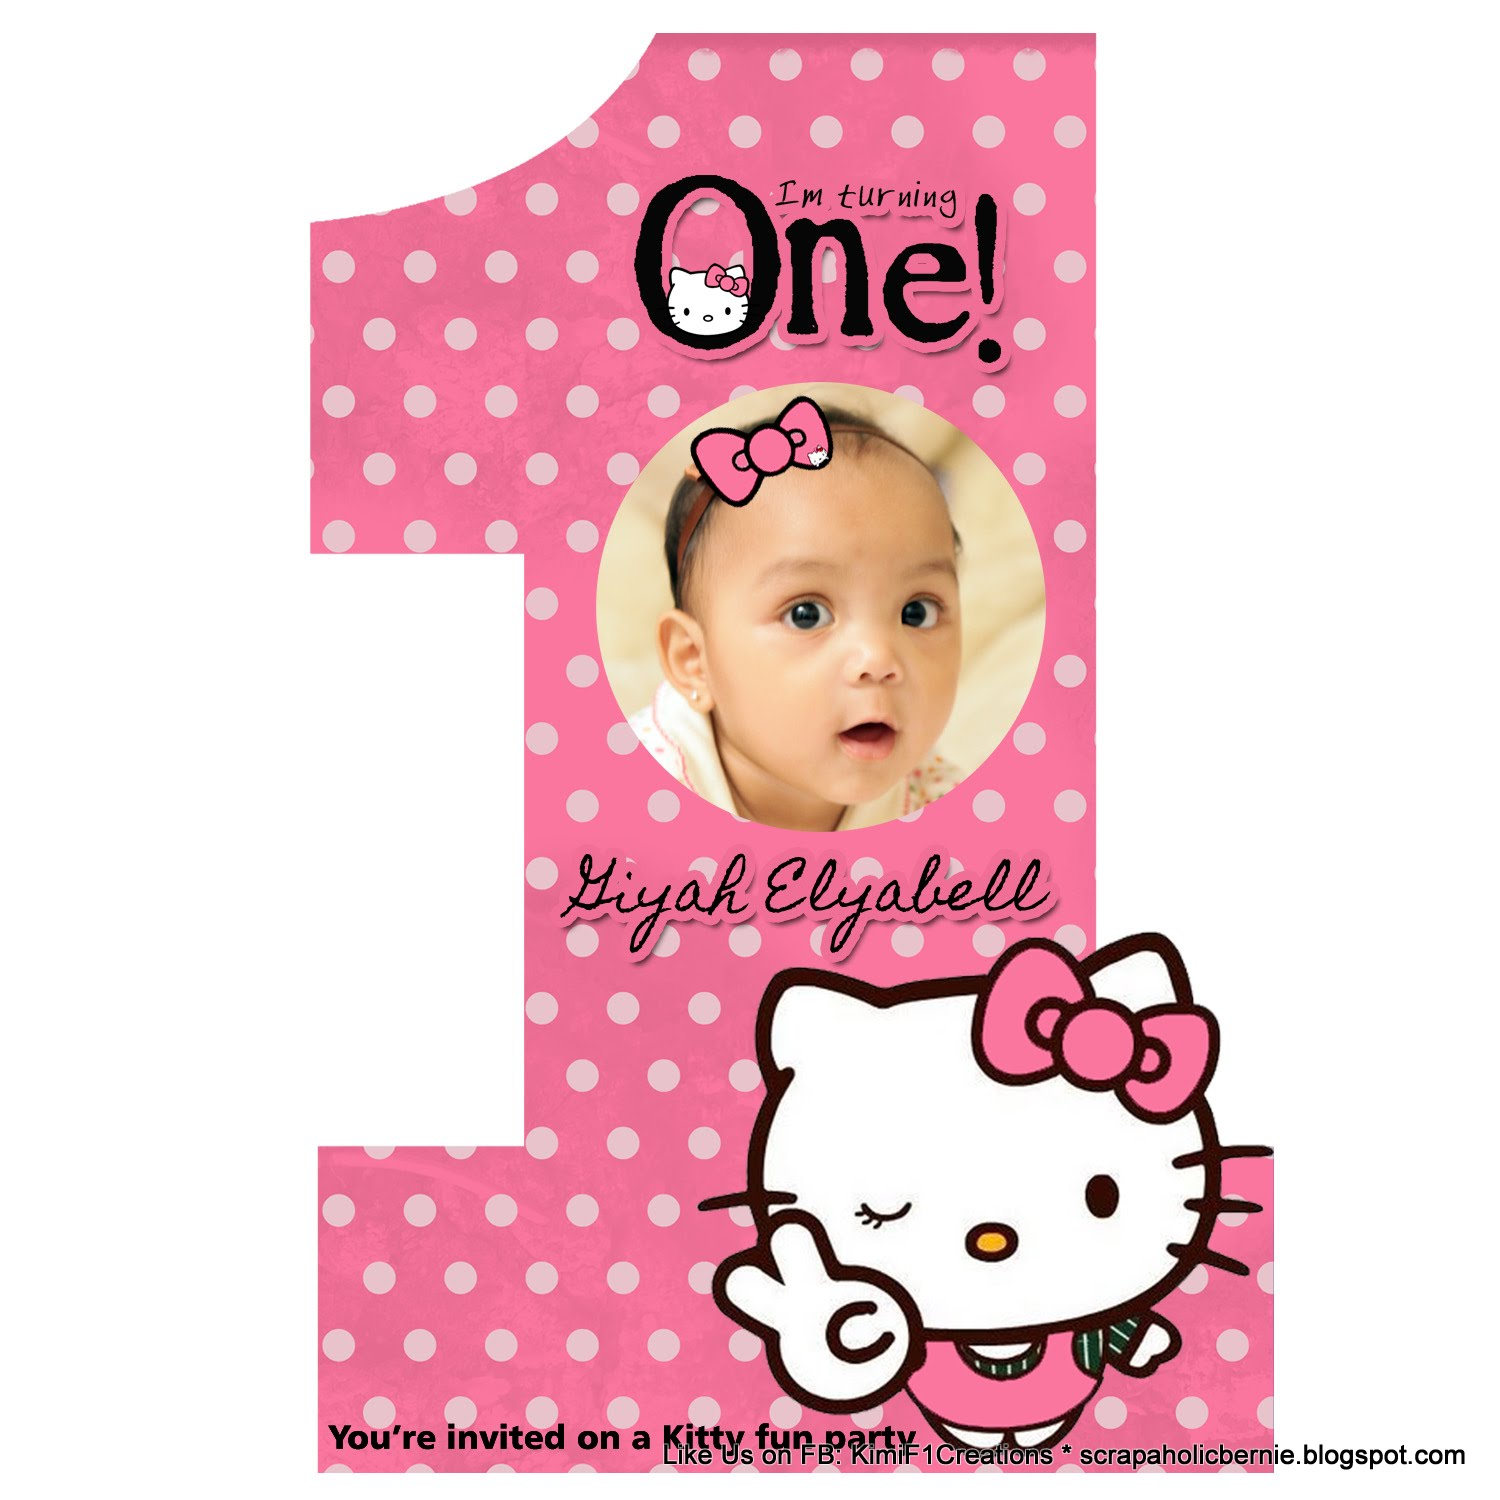 F1 digital scrapaholic hello kitty 1st birthday 2 page invitation hello kitty 1st birthday invitation p1 solutioingenieria Images